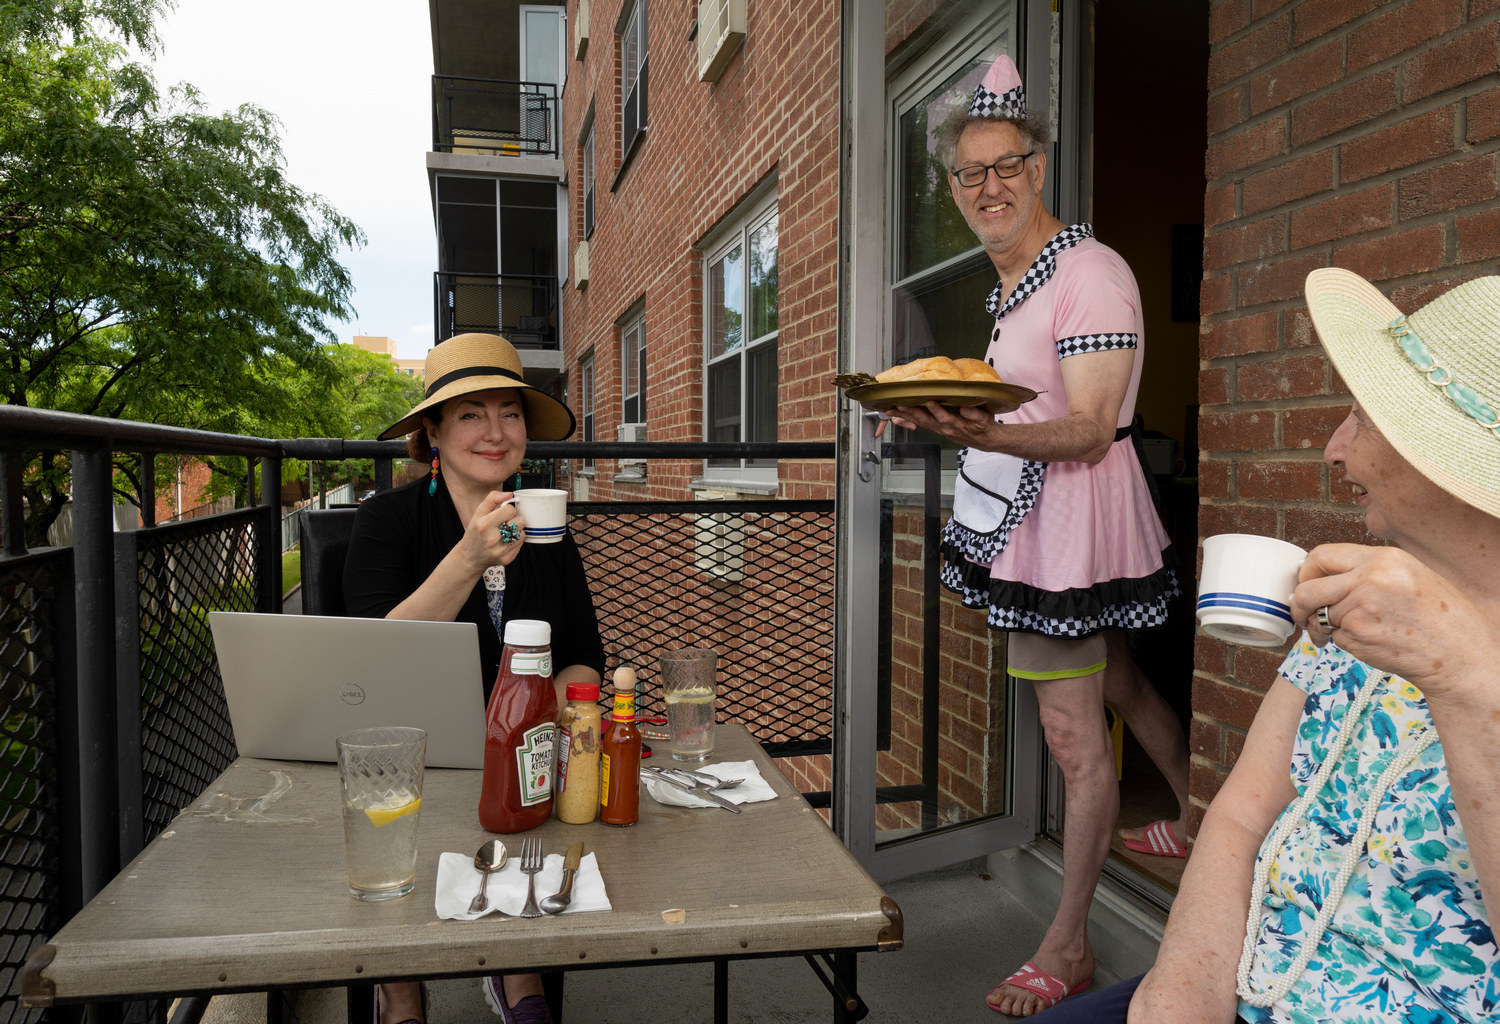 Two women dining on a balcony while a man in a server costume brings them food